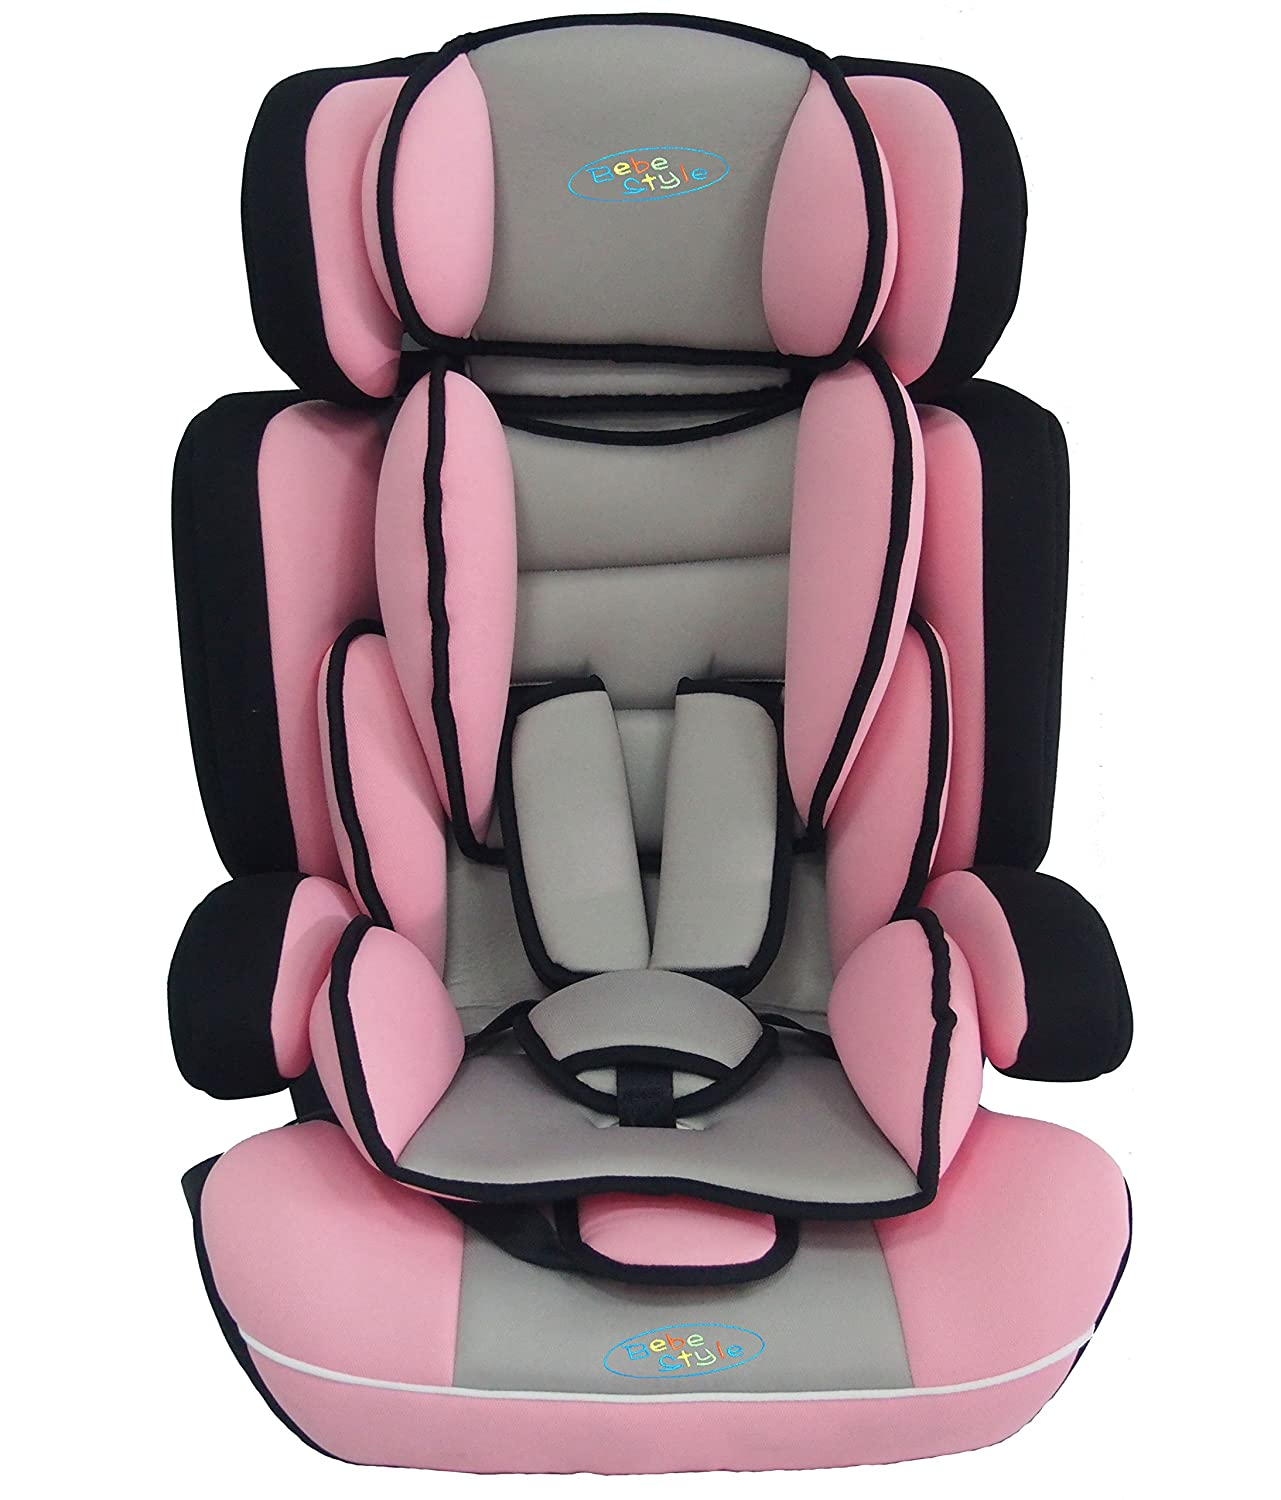 Bebe Style Convertiblle 1/2/3 Combination Car Seat and Booster Seat